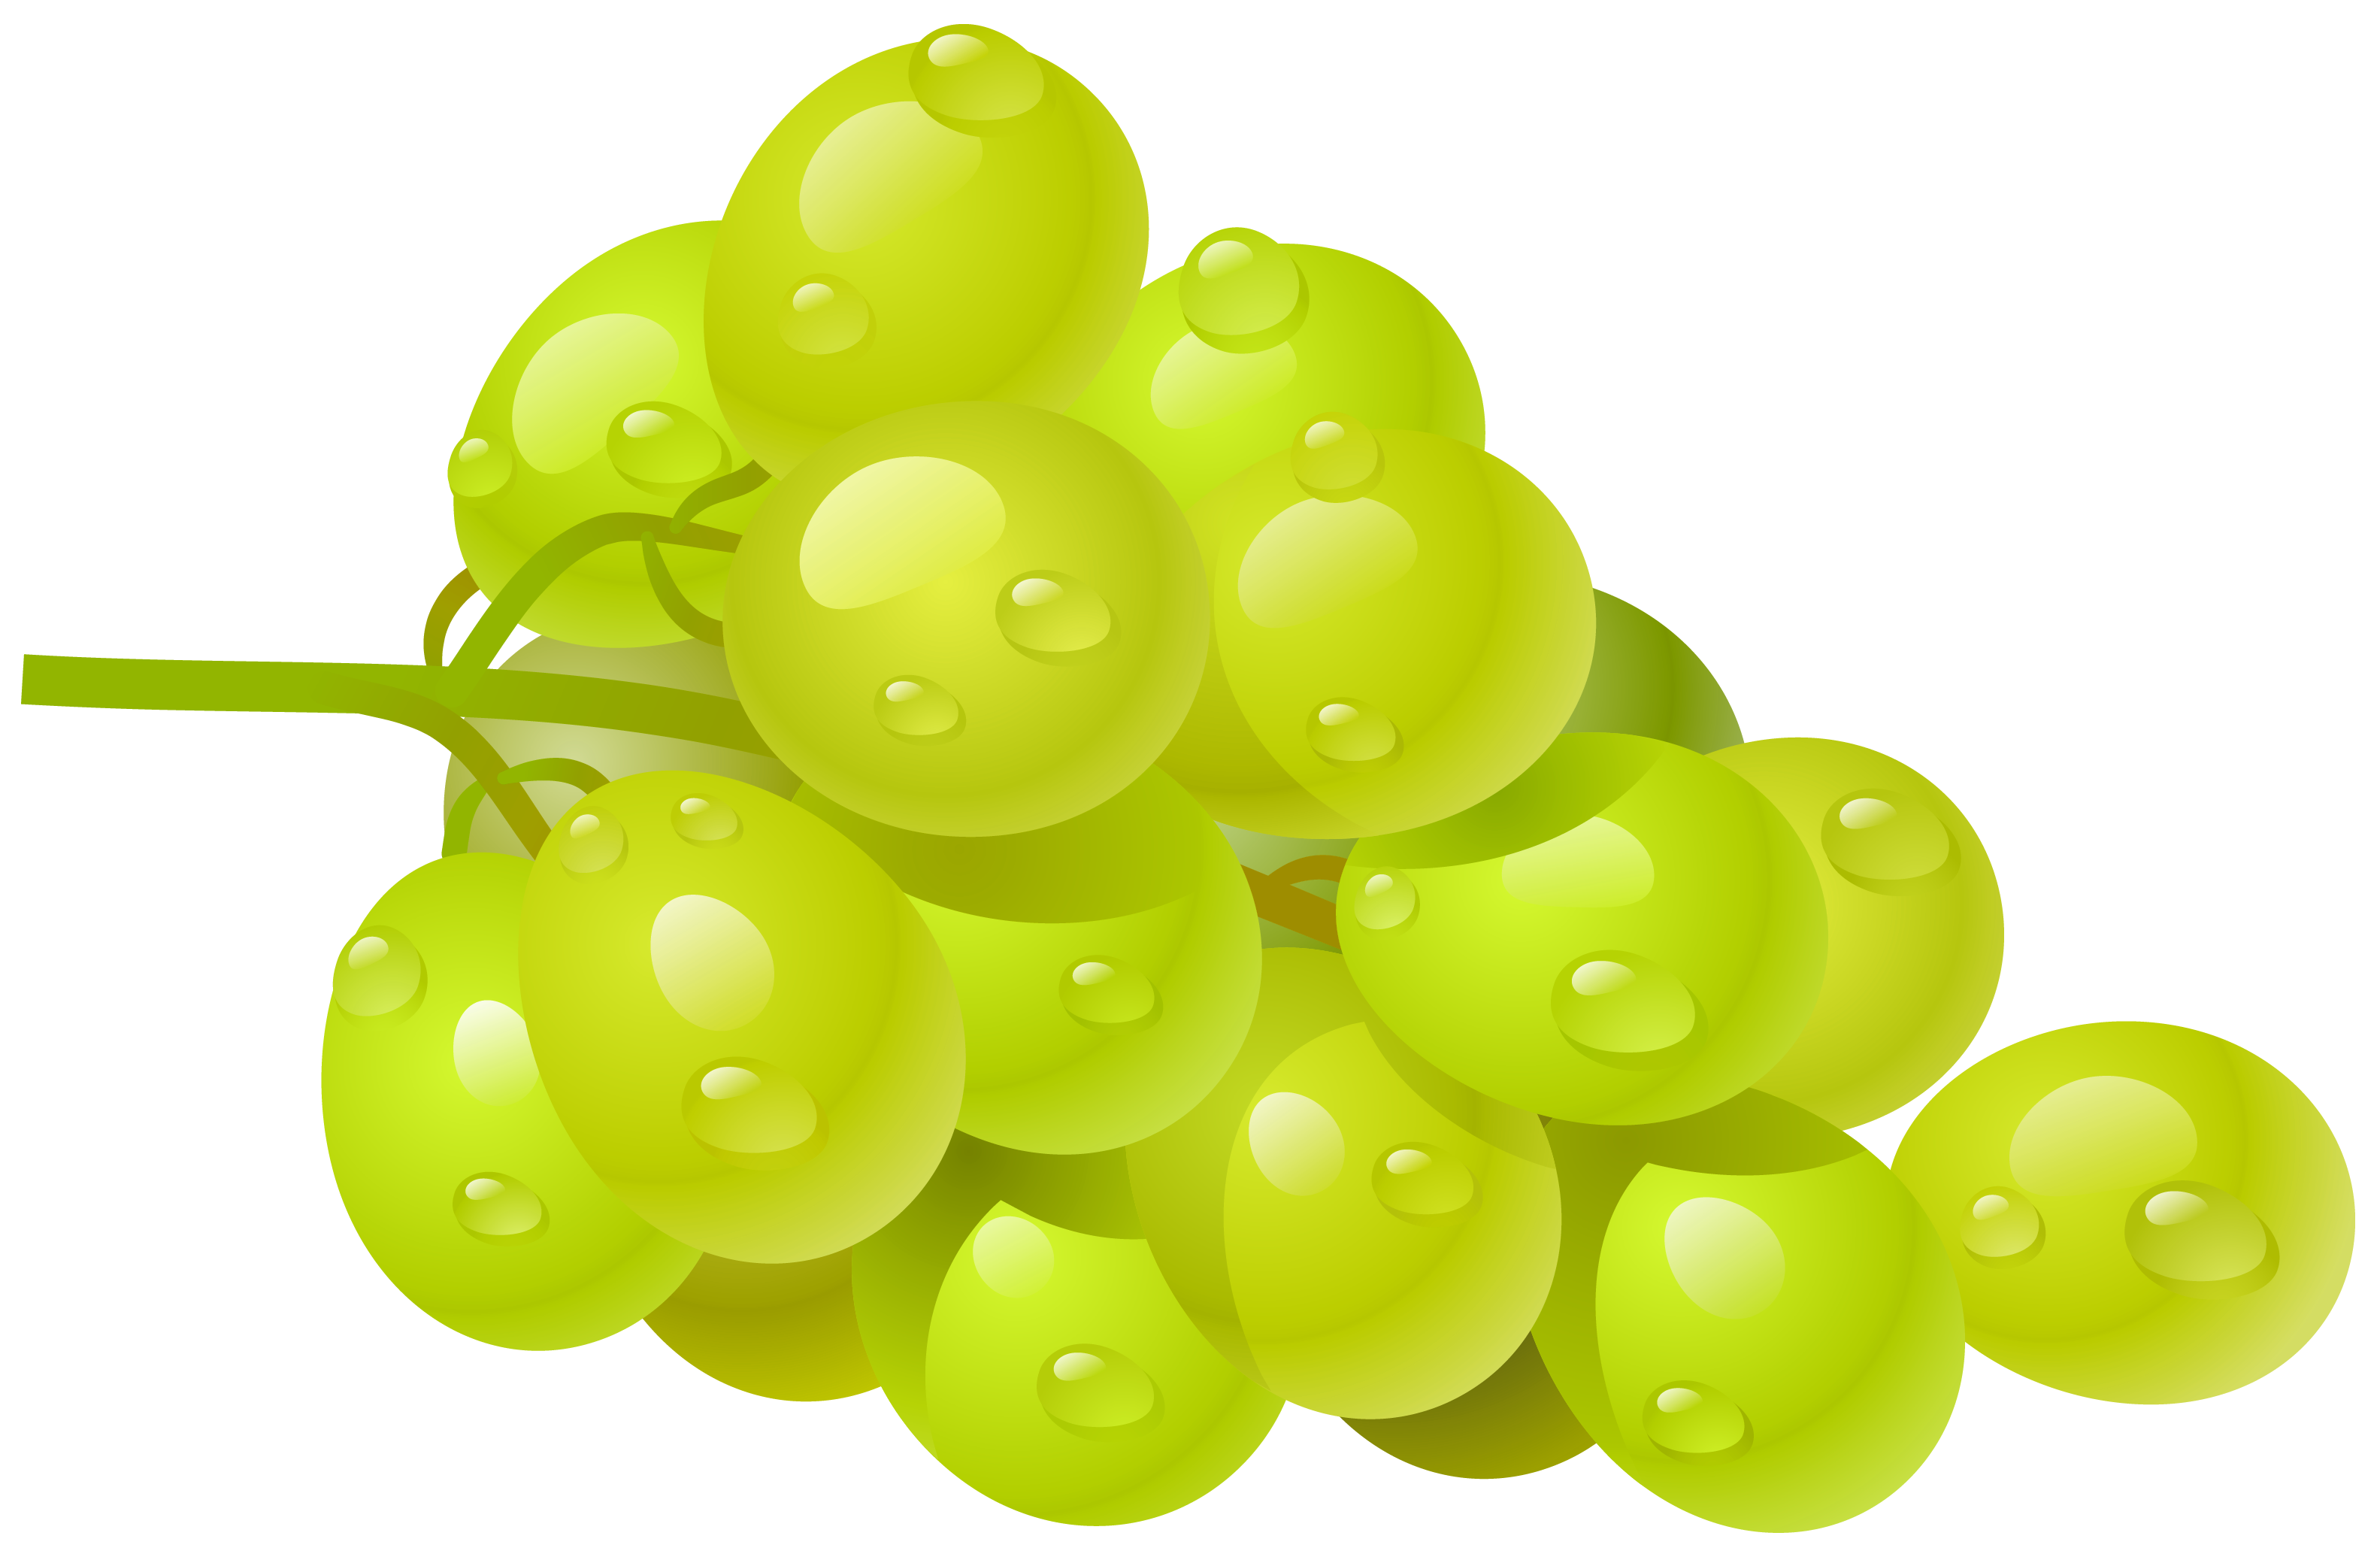 Grapes clipart. White grape png picture